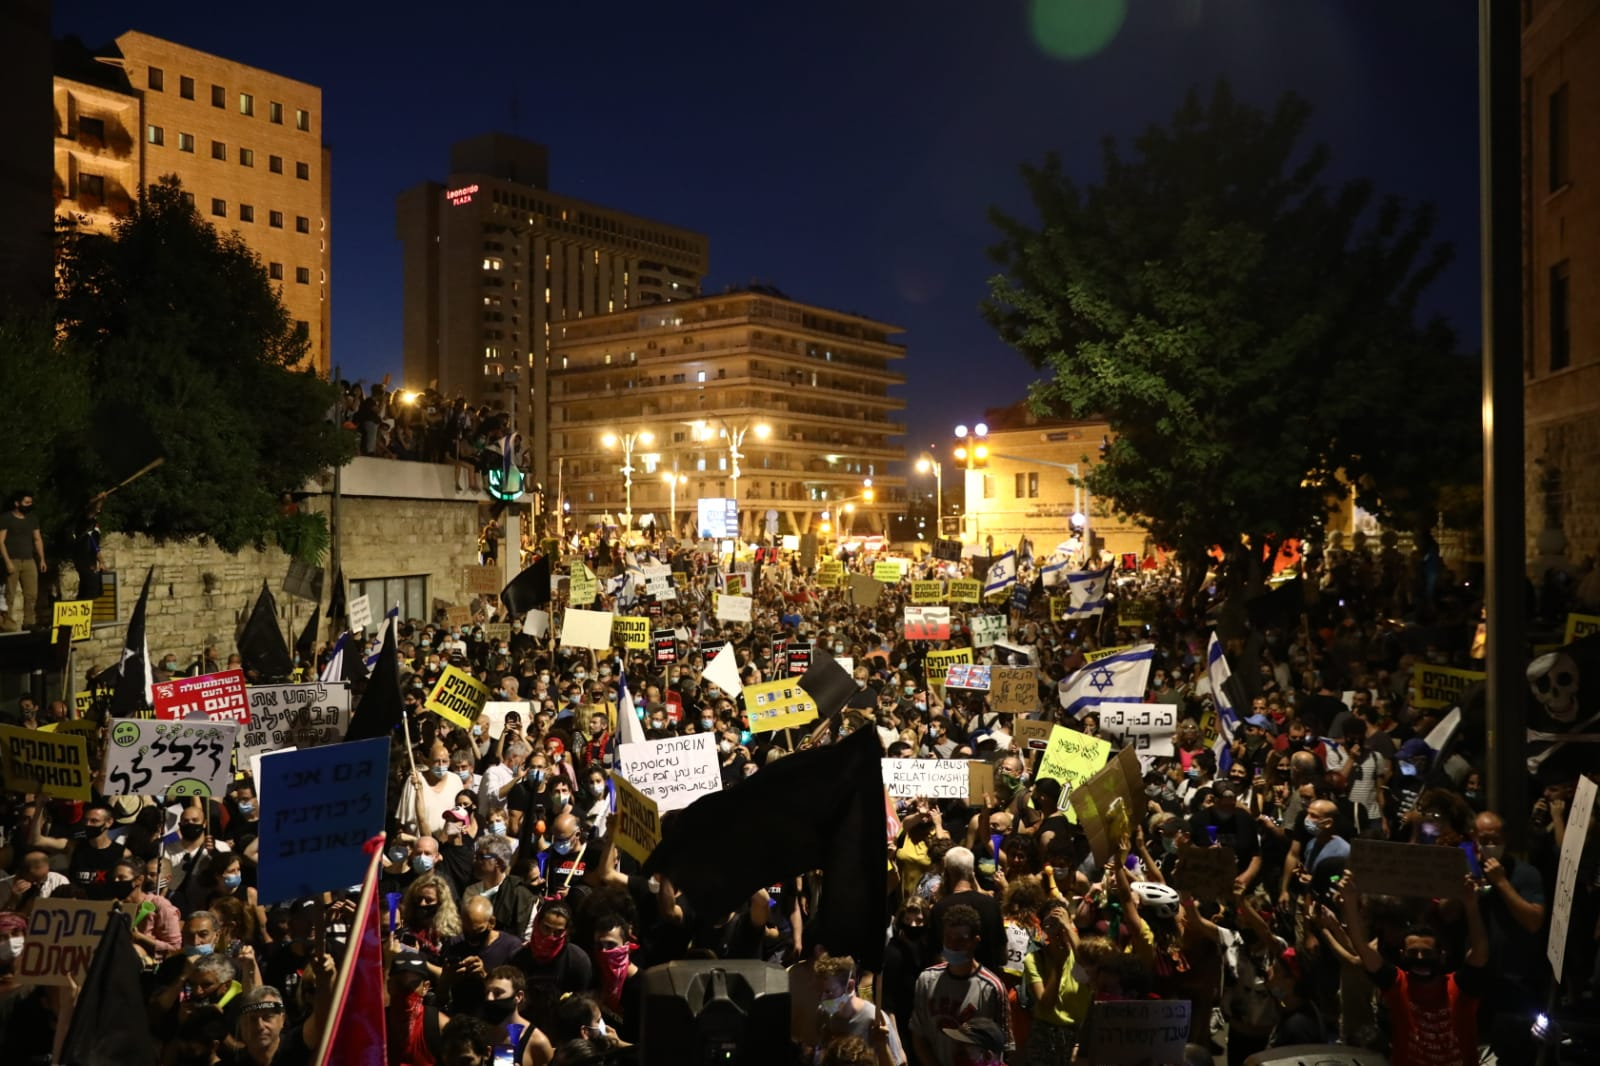 Thousands take part in a mass demonstration outside the Prime Minister's Residence in Jerusalem, demanding Benjamin Netanyahu step down over his corruption scandals, July 14, 2020. (Oren Ziv)